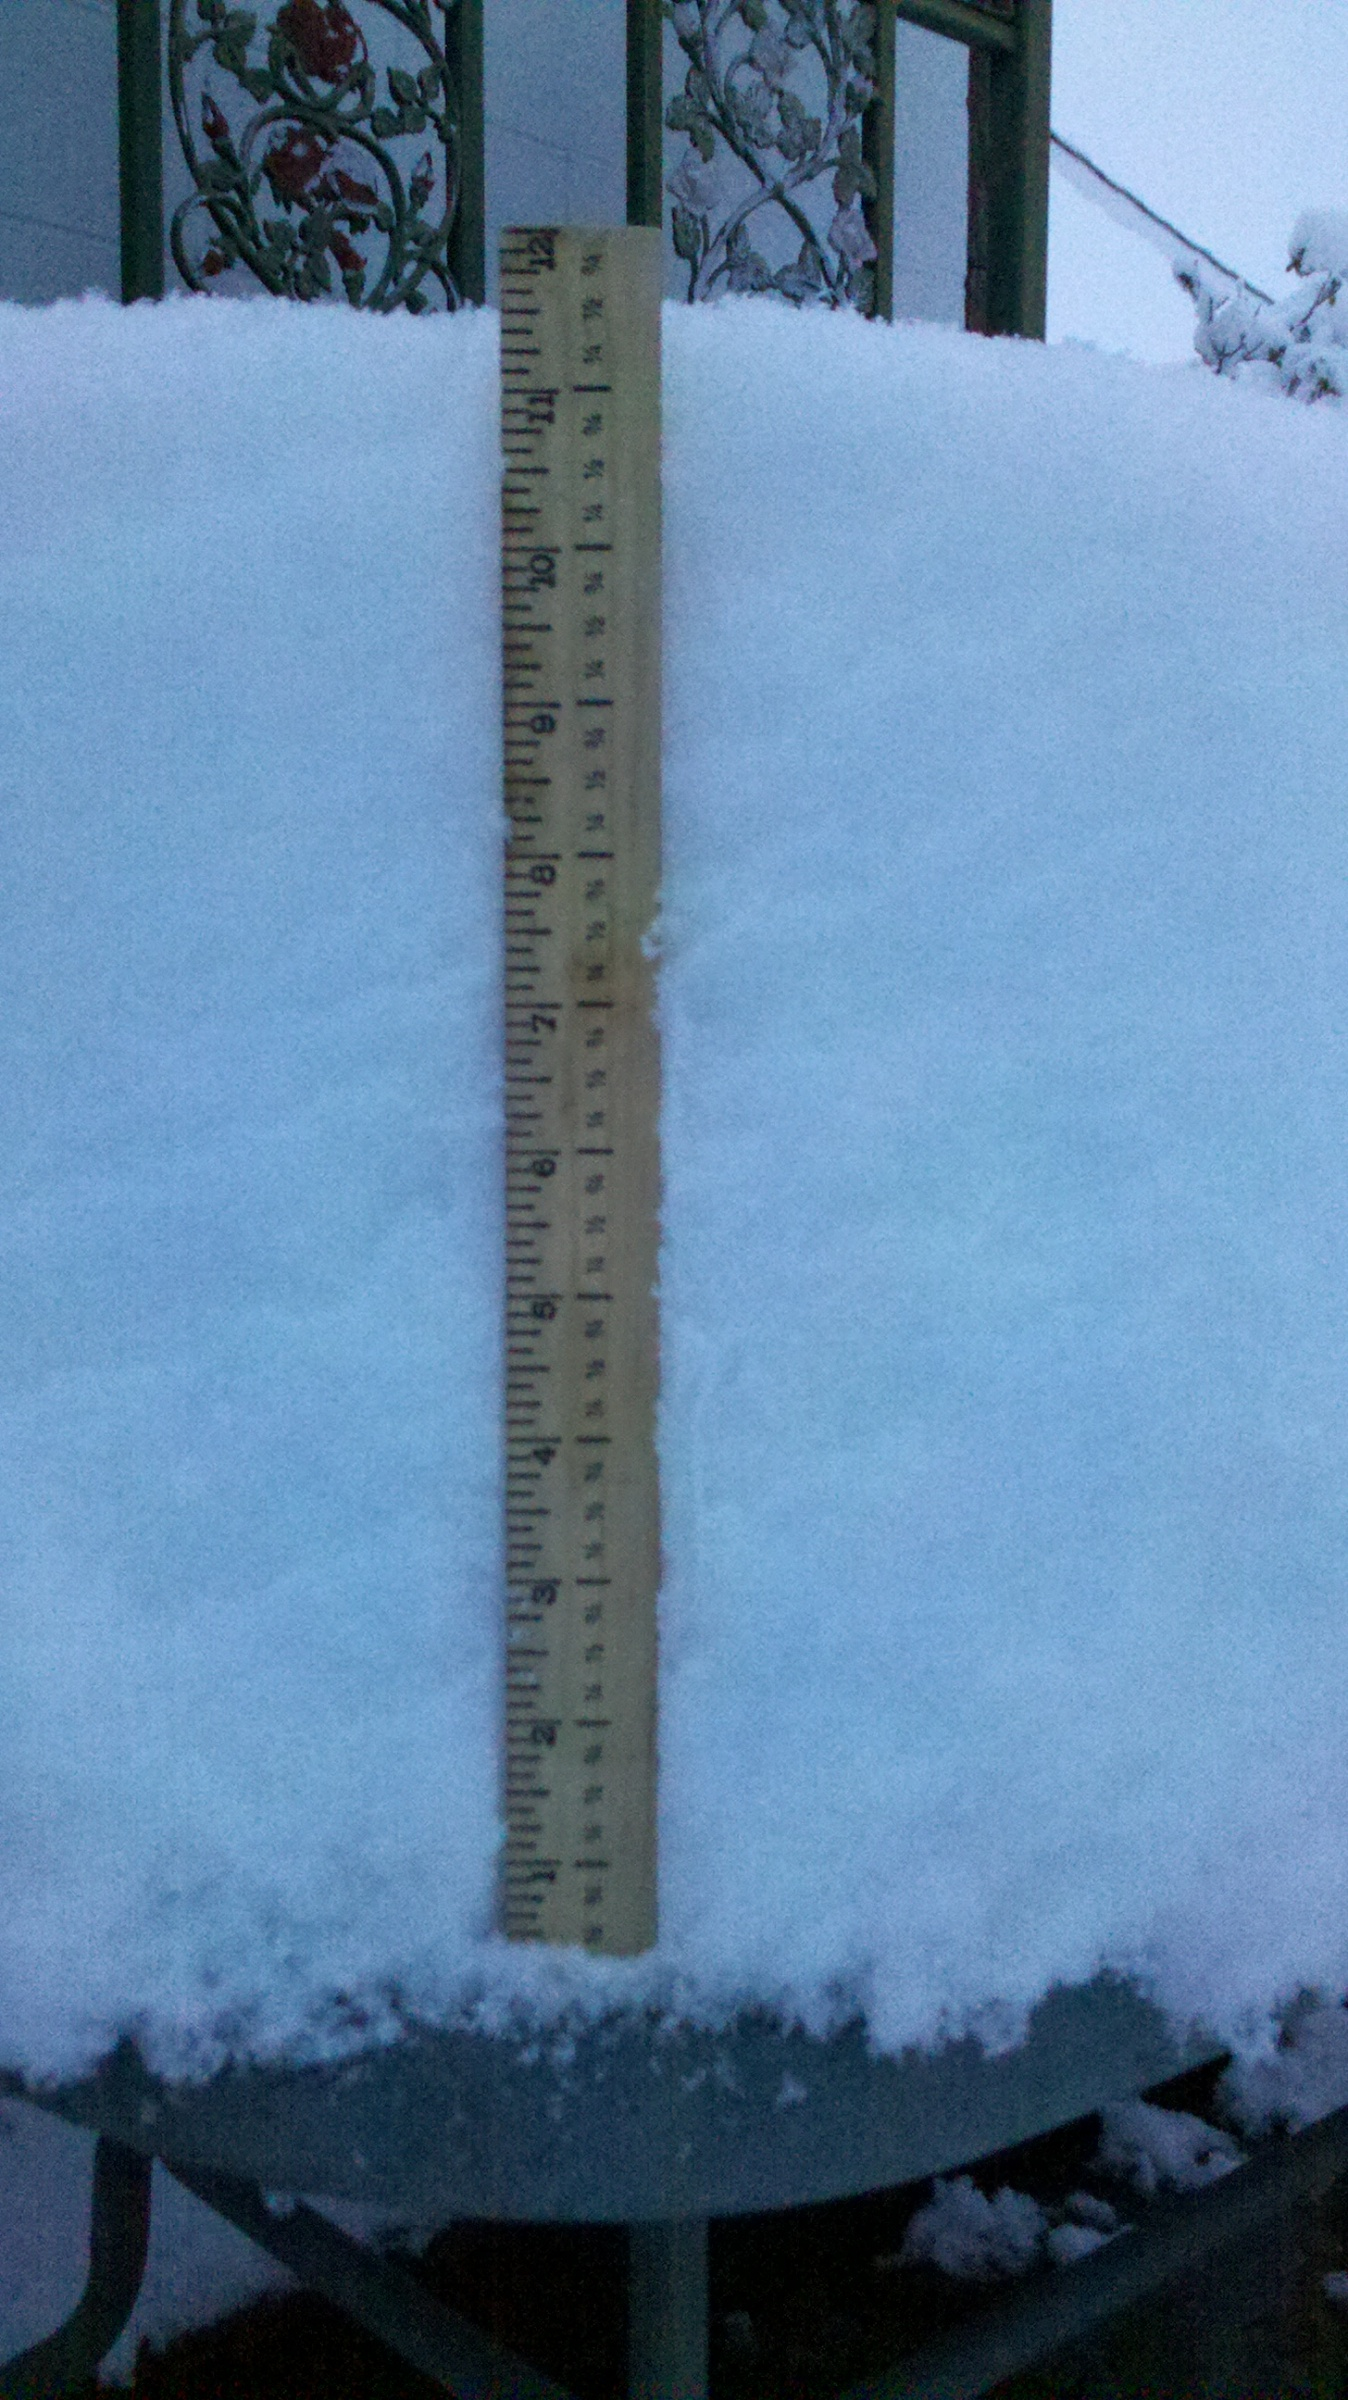 Click image for larger version  Name:1 foot of snow.jpg Views:70 Size:947.4 KB ID:9974